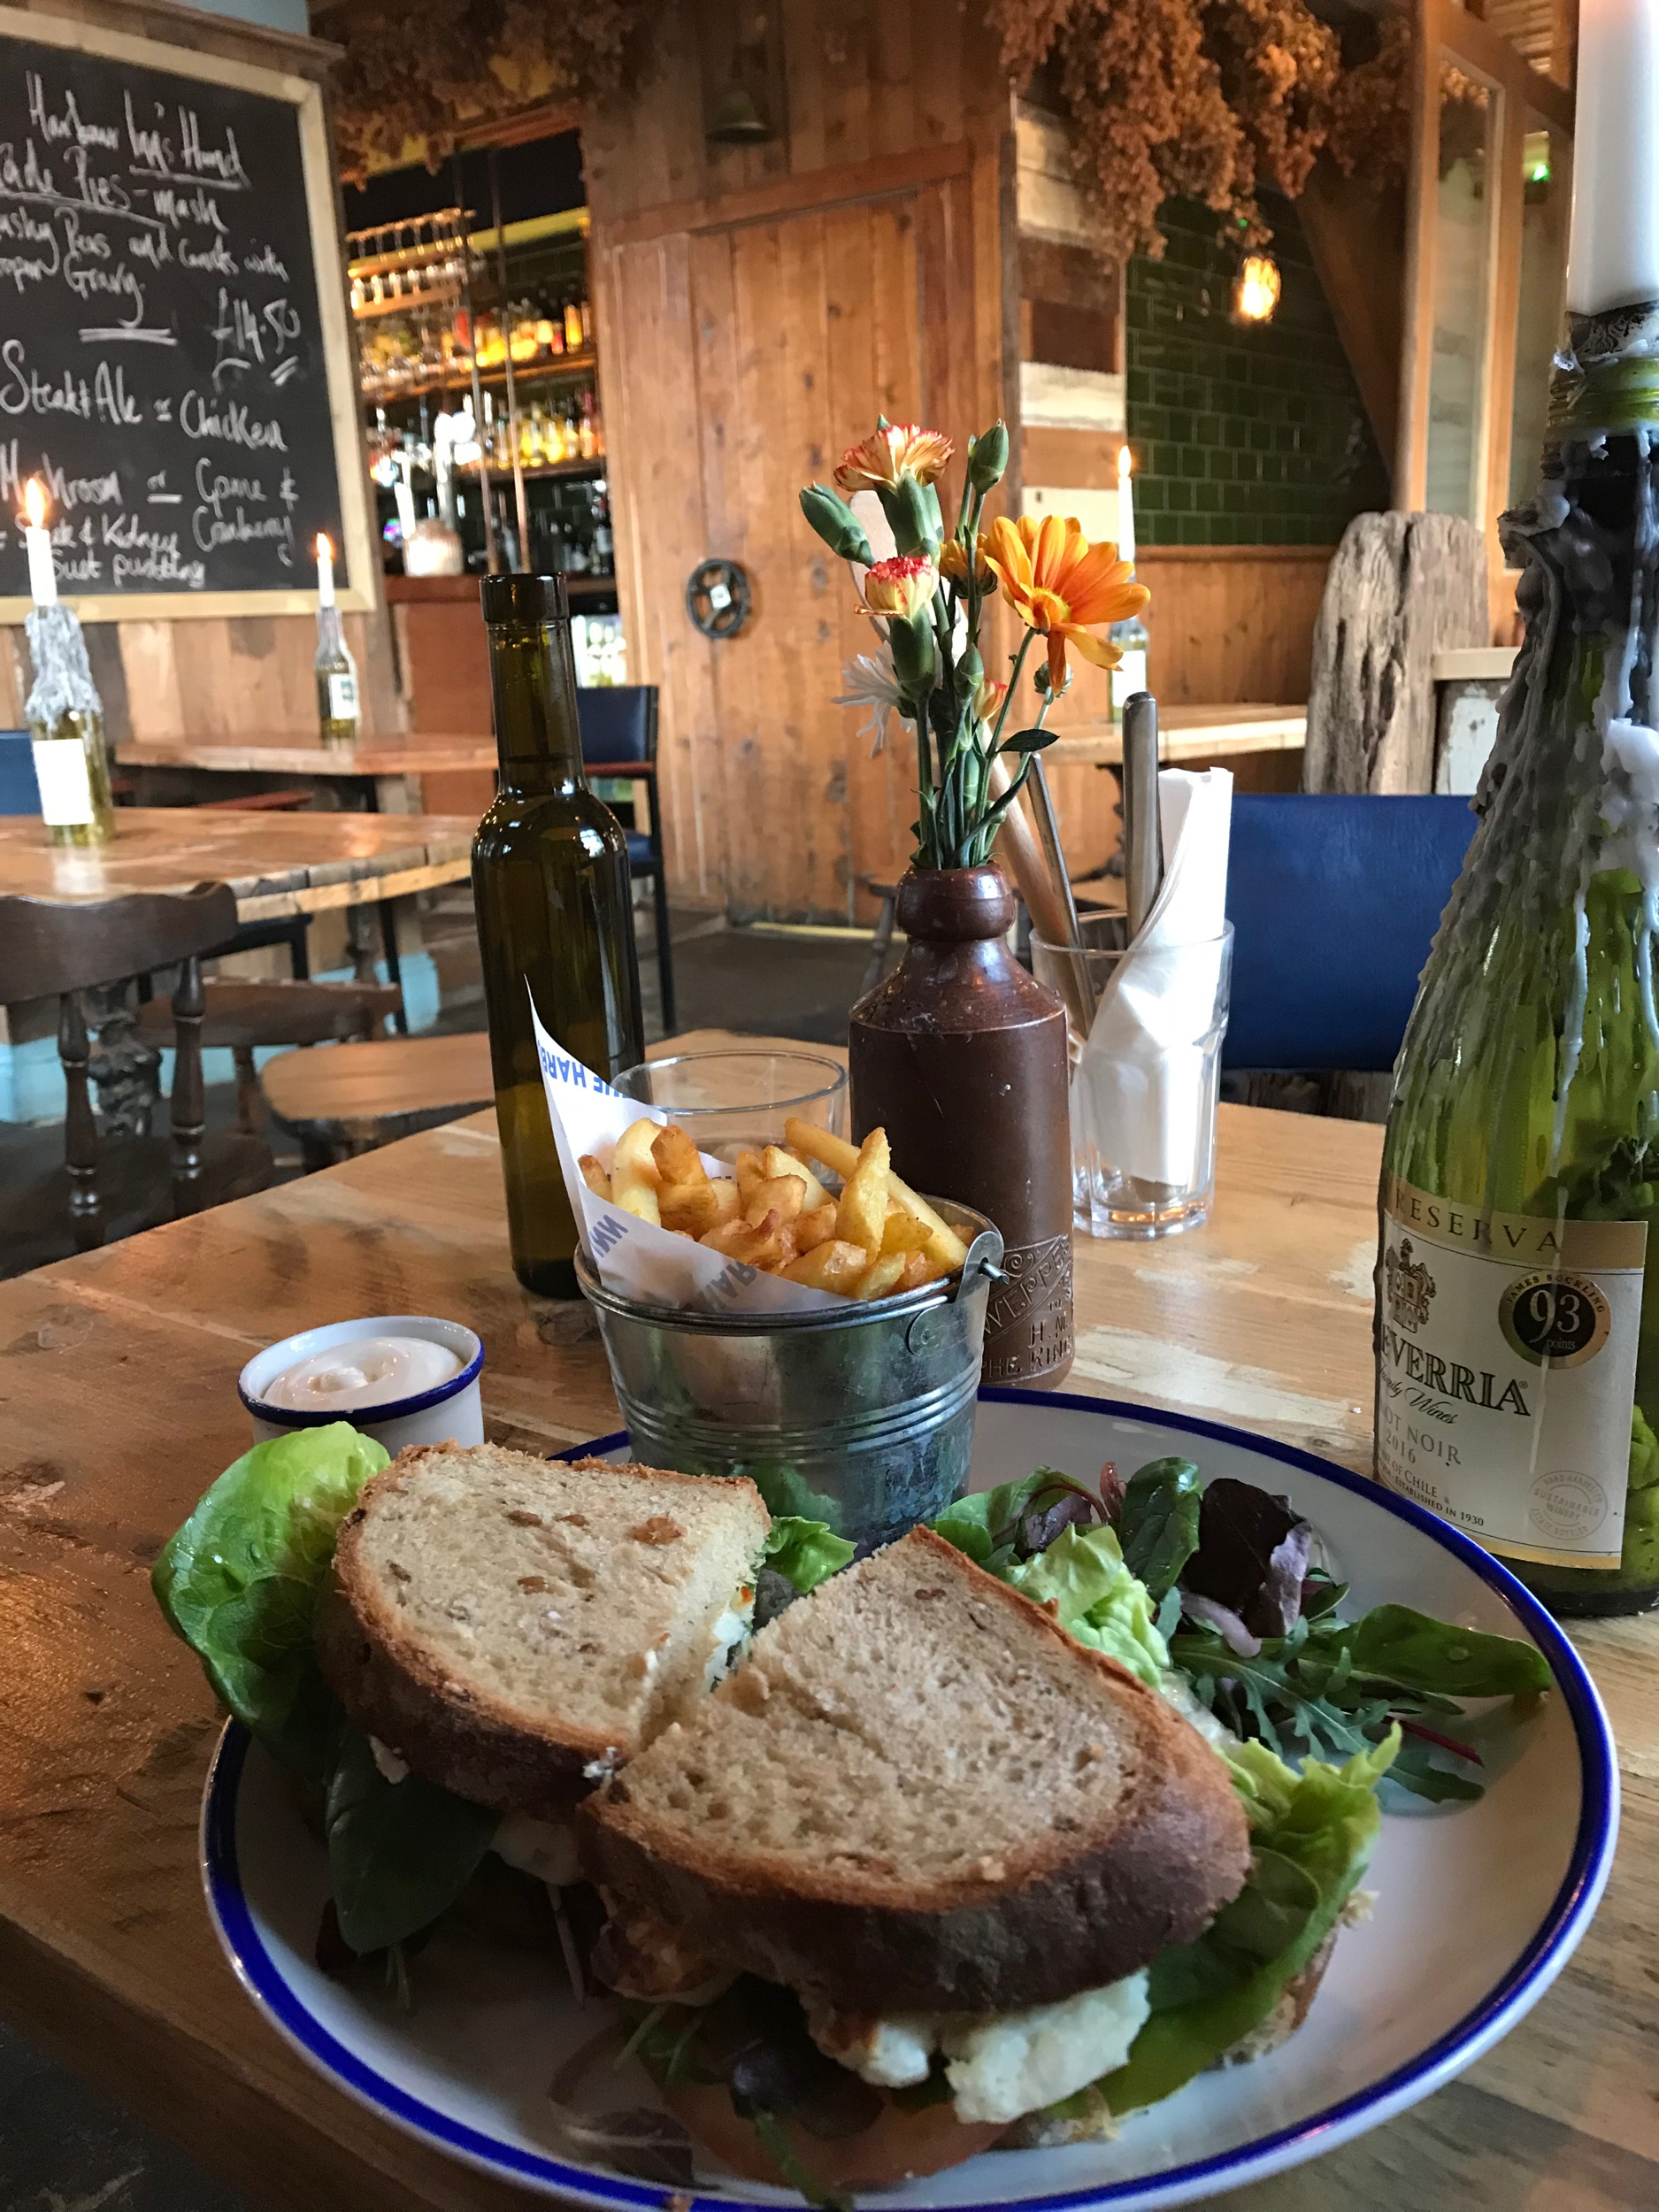 The Harbour Inn . A cozy pub under the same ownership as Luben's, The Pullman, and a few other Folkestone establishments. Like most pubs in Folkestone, you'll find a veggie option for Sunday roast.